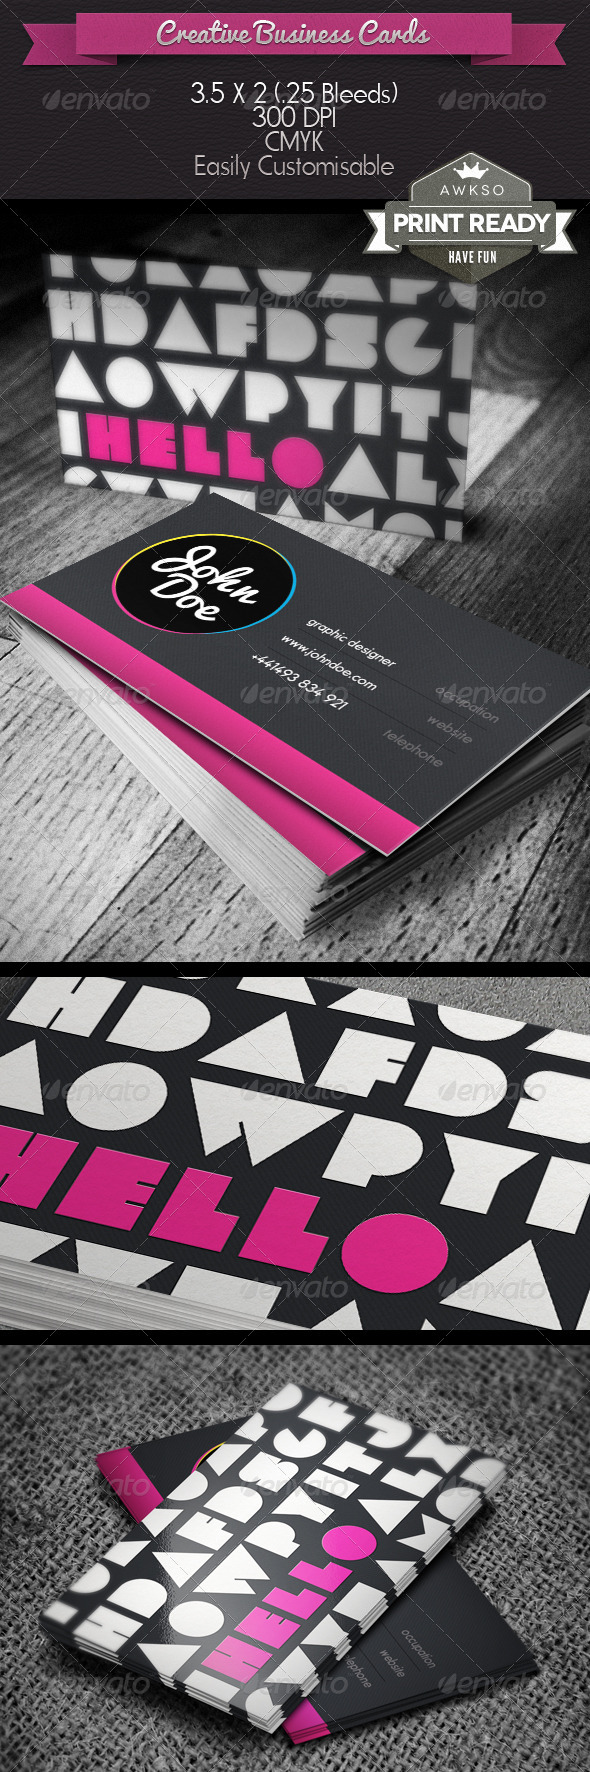 GraphicRiver Creative Business Card 4600654